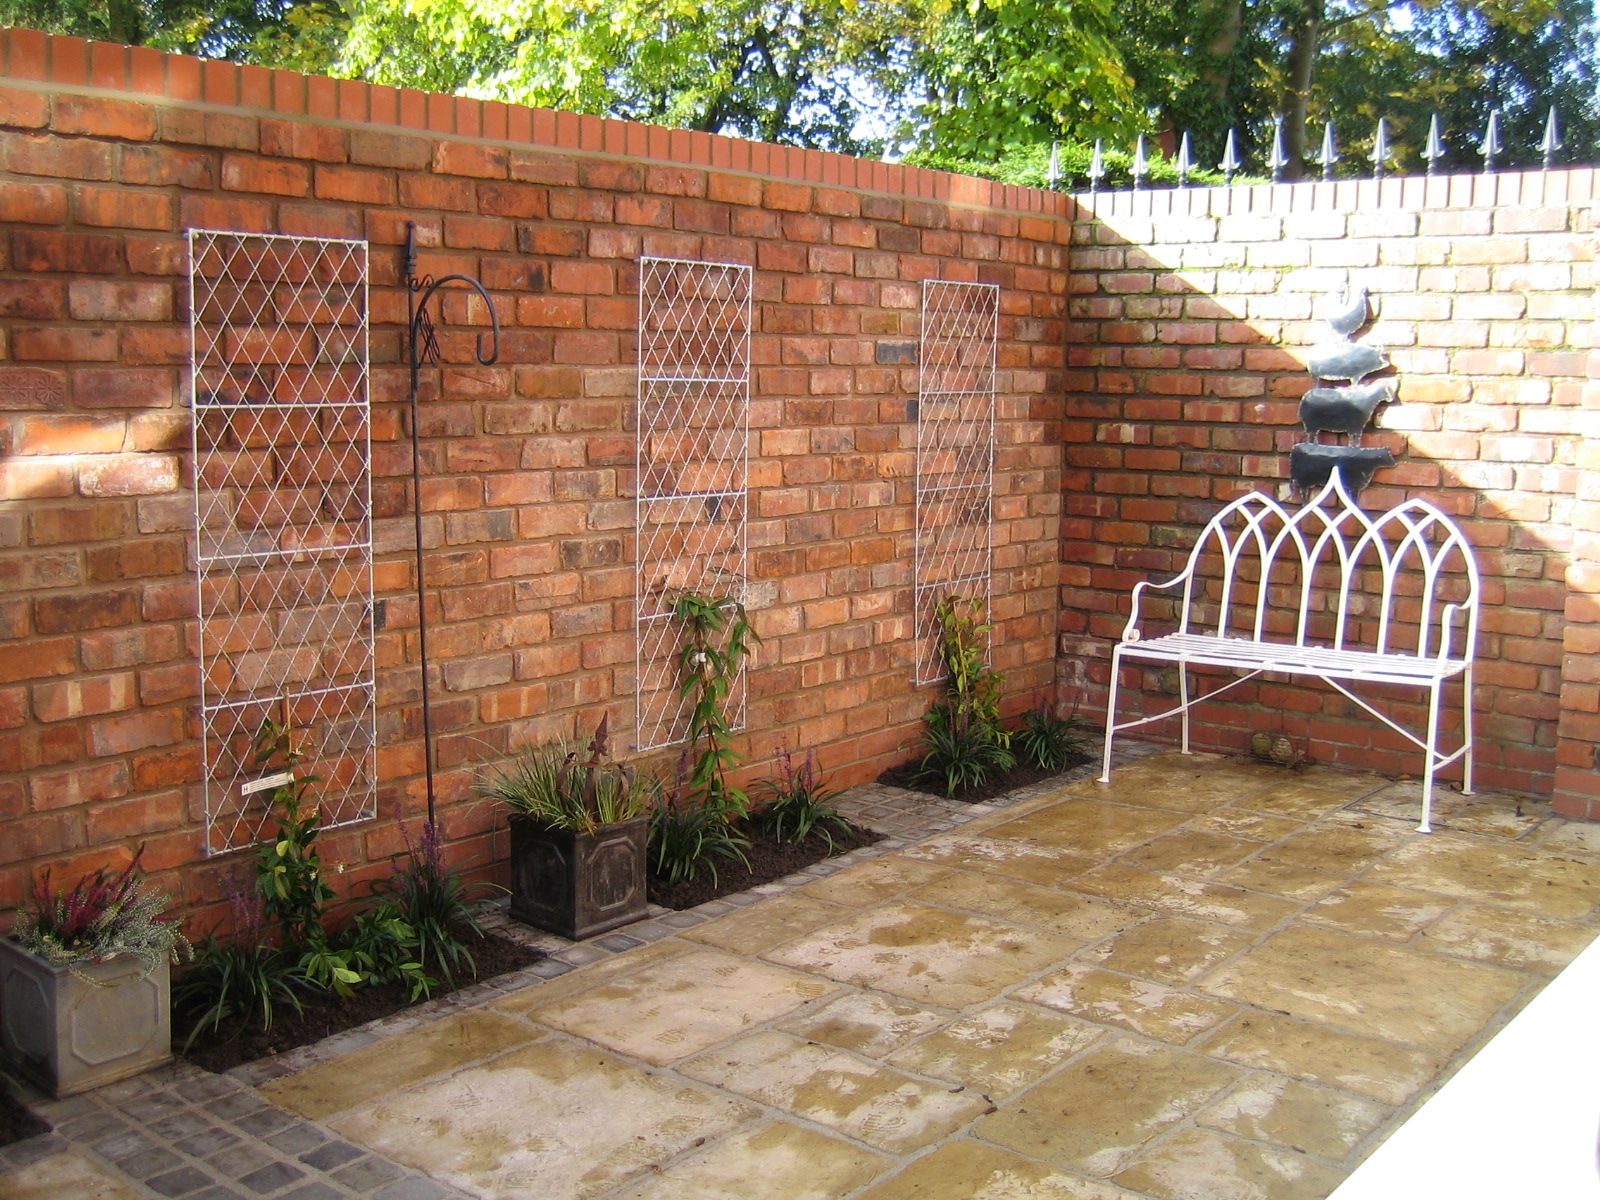 Reclaimed brick walls in a small courtyard garden from a garden